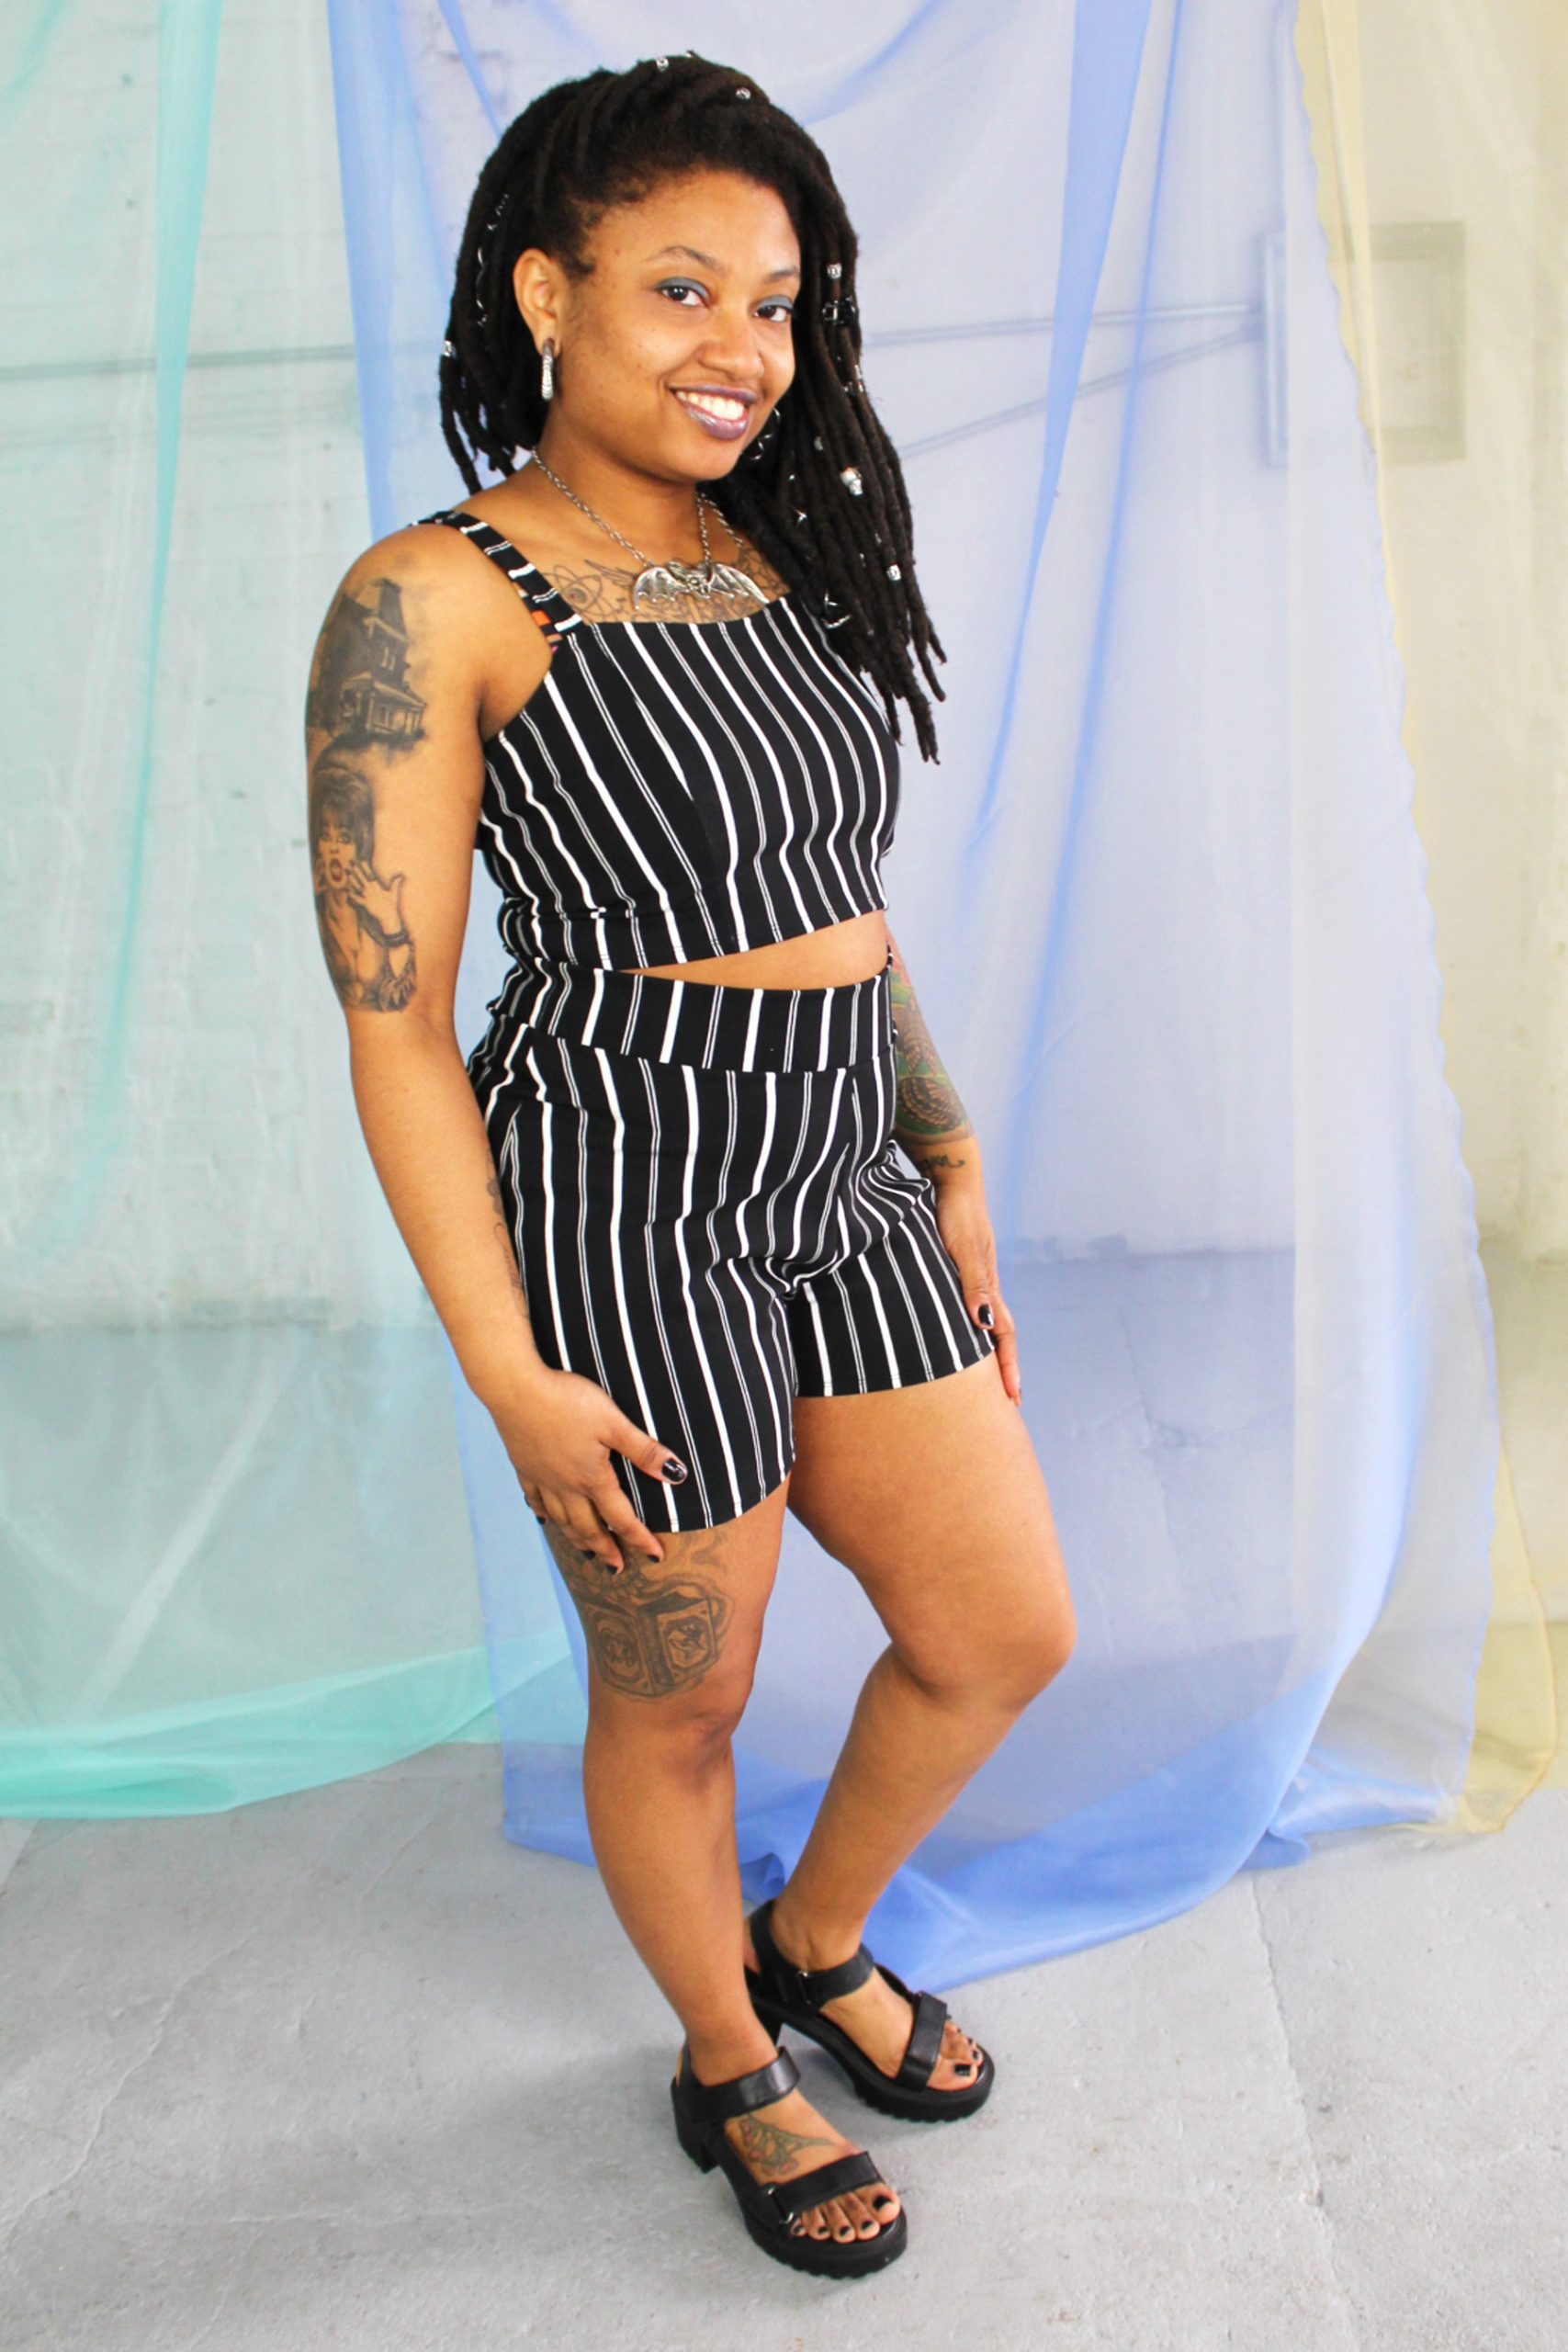 Black straight size female model with locs wearing black and white striped crop top and high waist shorts ethically handmade